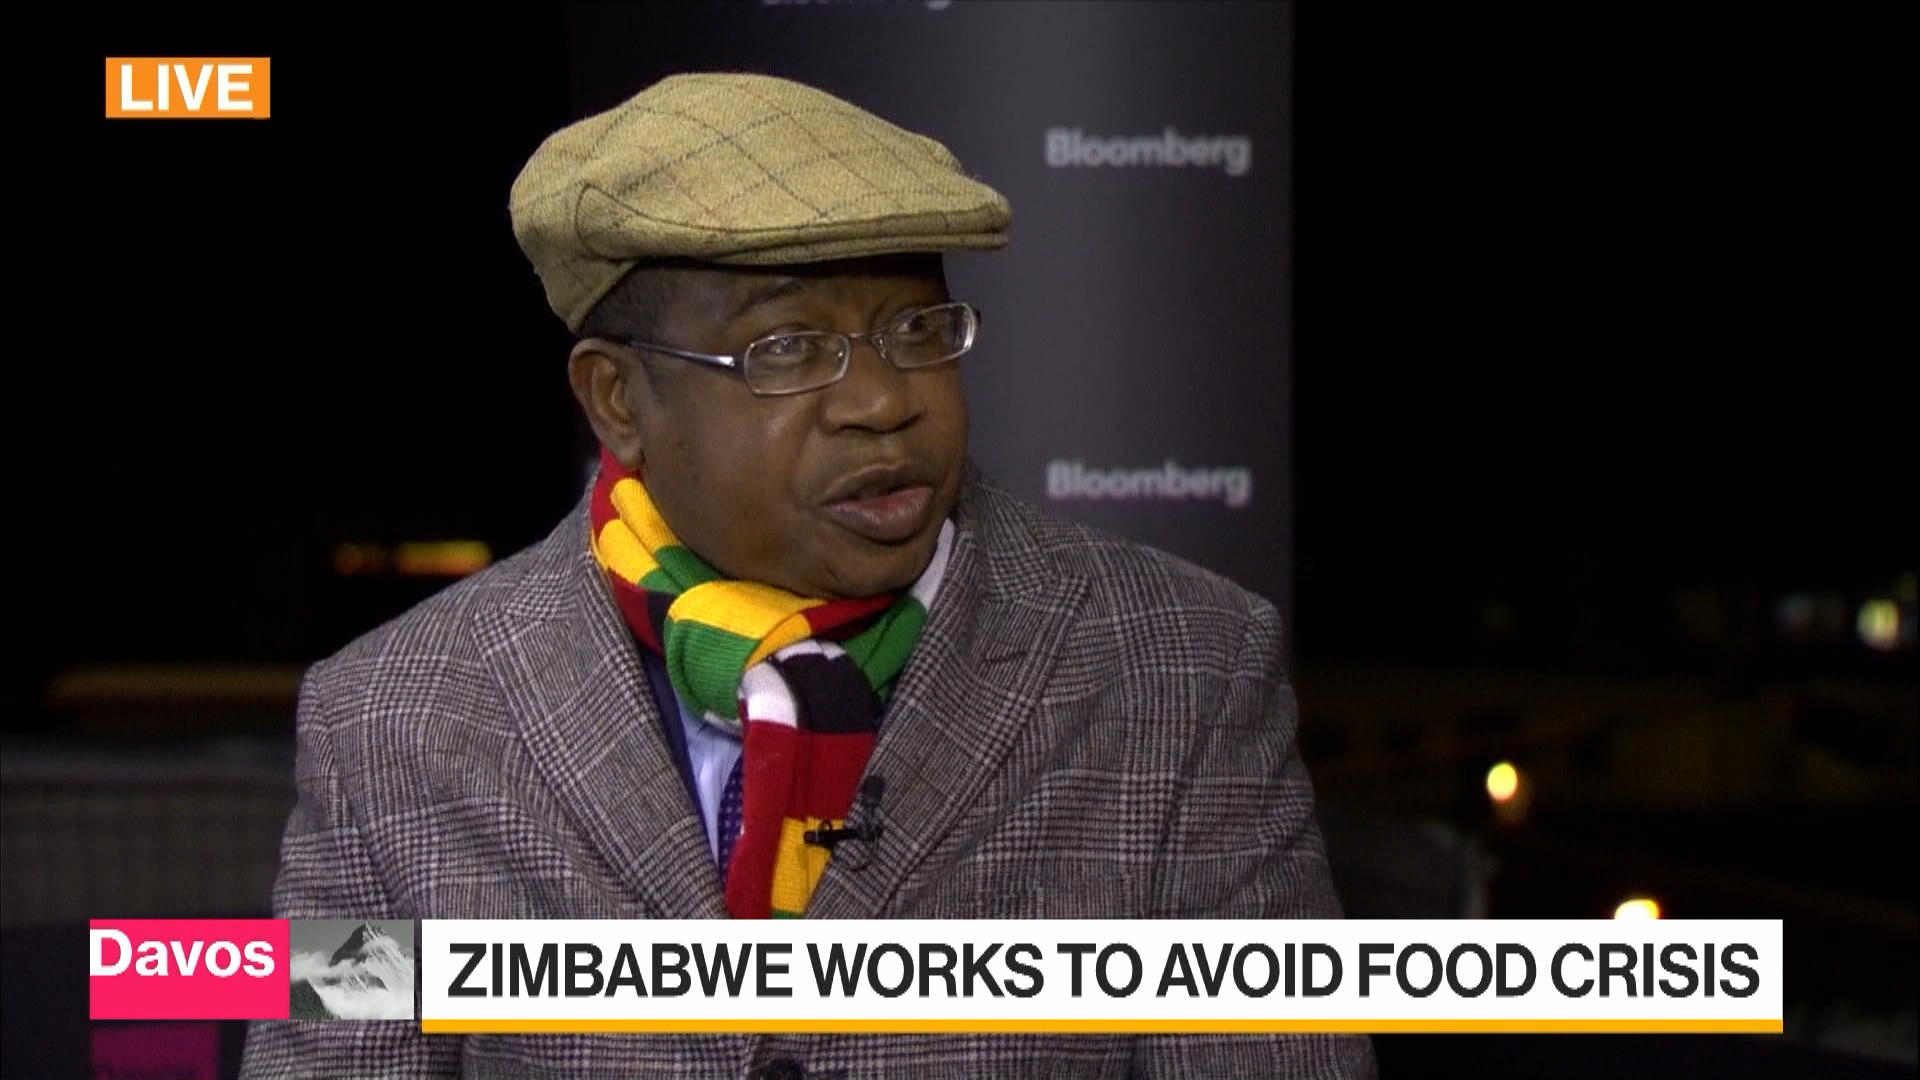 Zimbabwe Finance Minister Discusses Food Shortage Economy Bloomberg